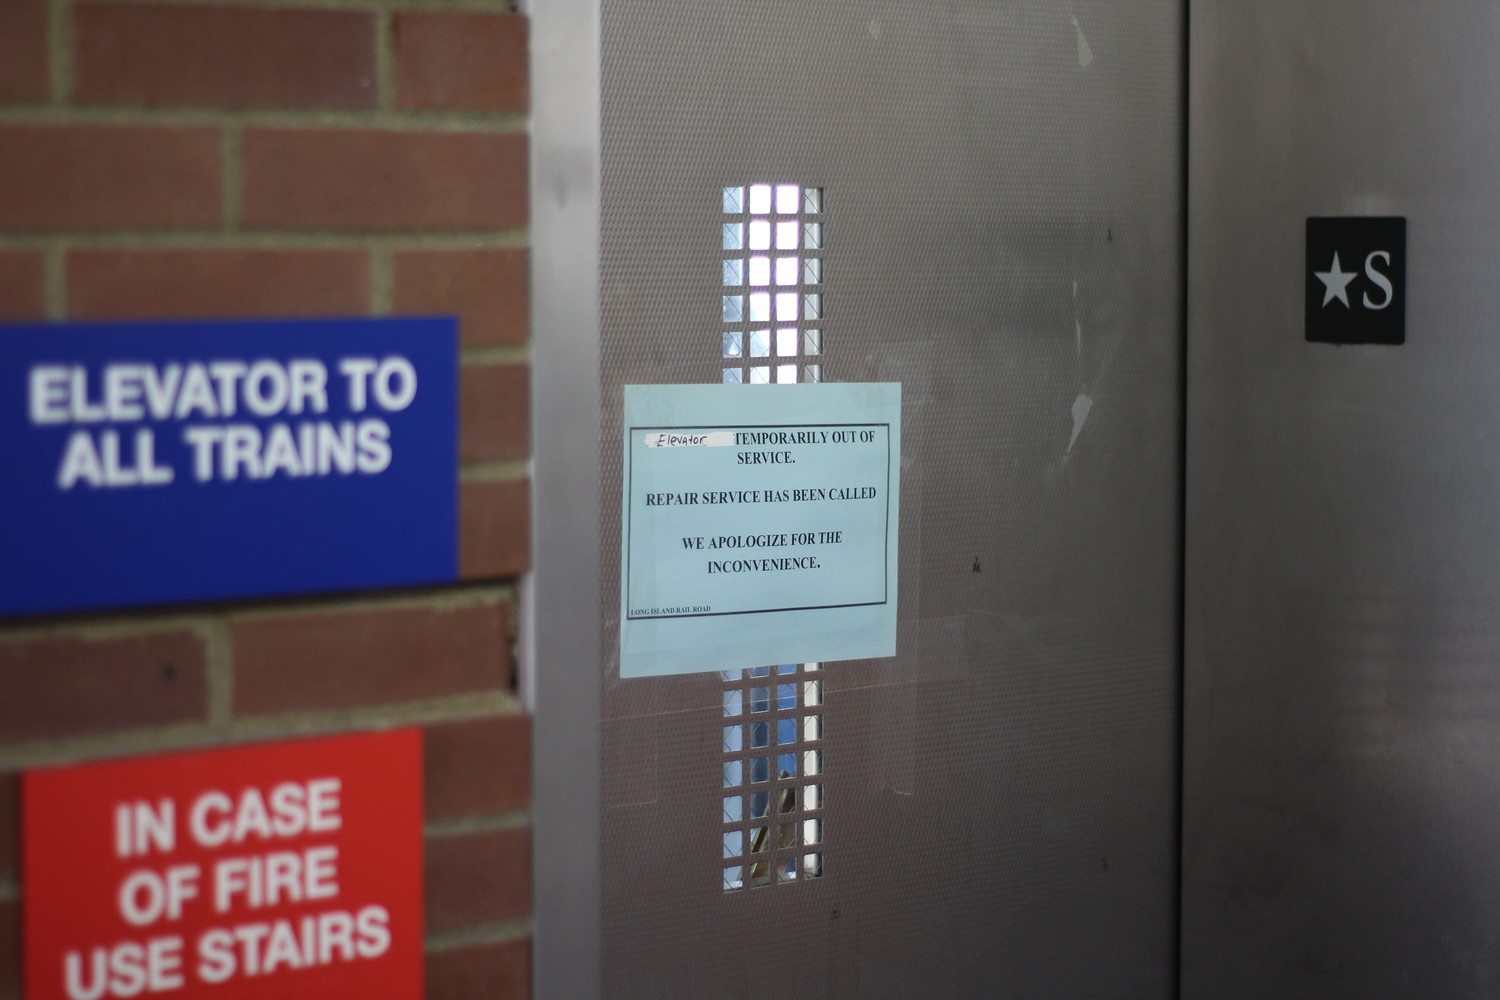 The elevator remained out of service on Monday after 11 commuters were trapped in it on March 9.